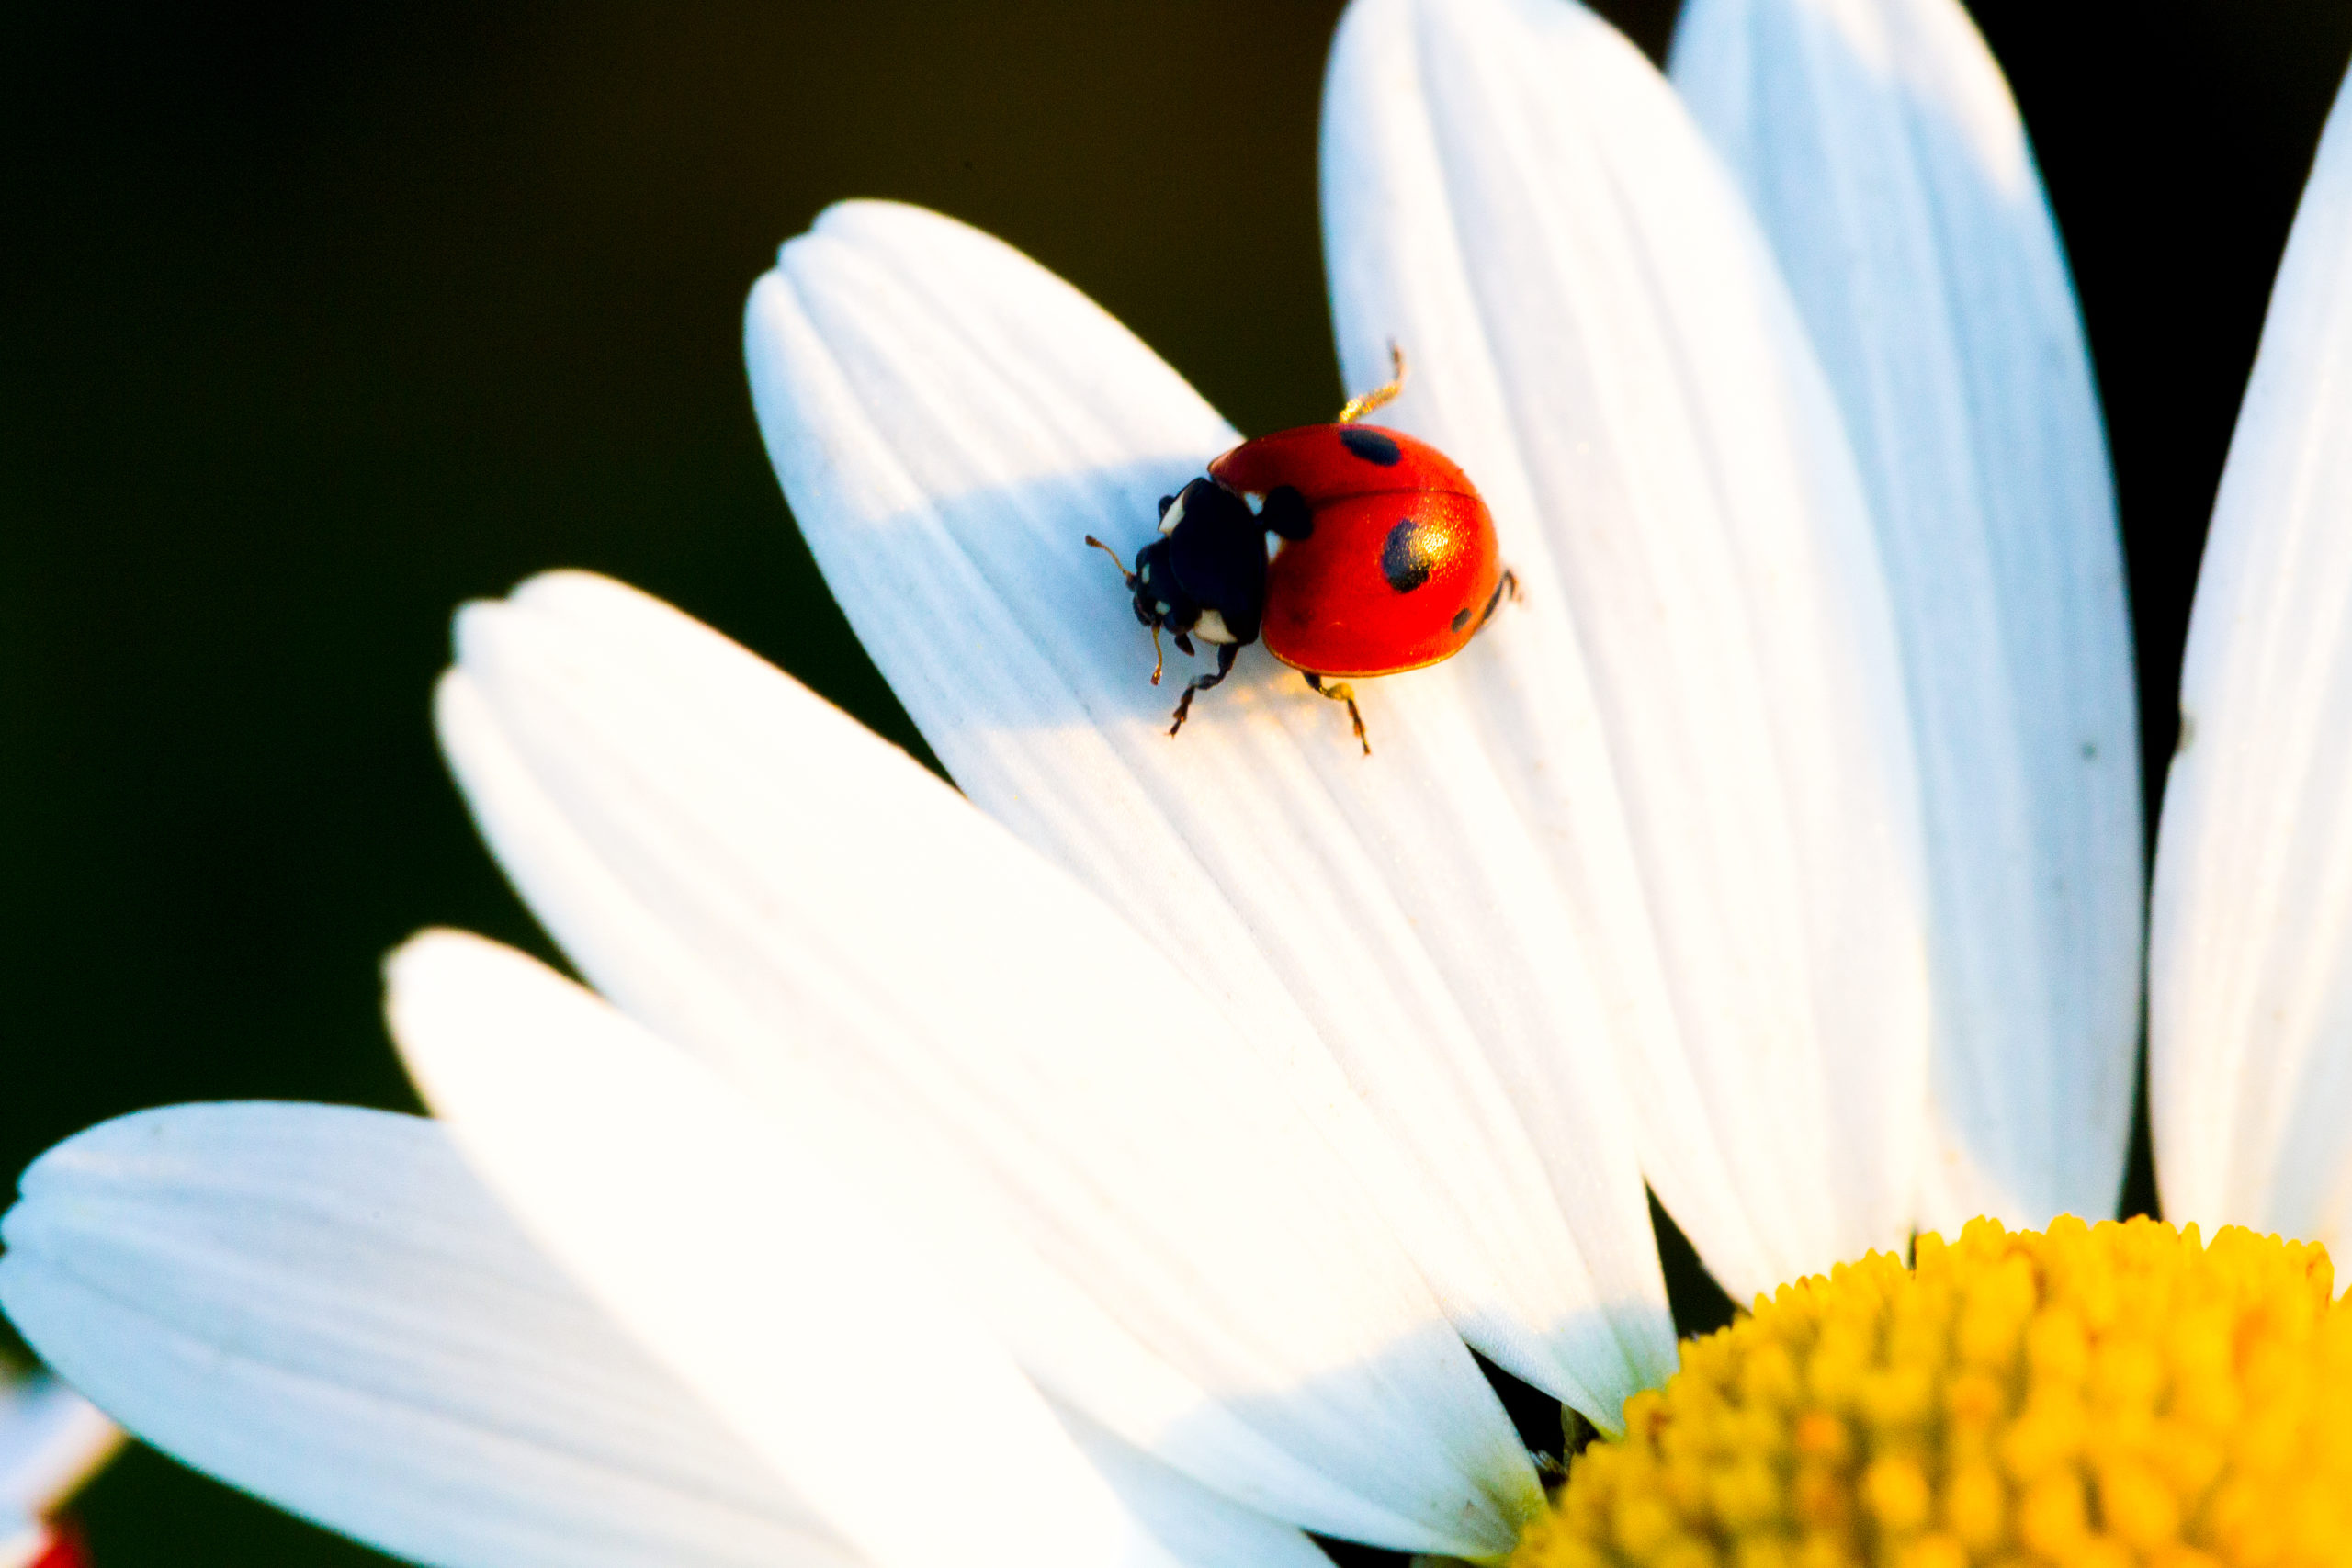 Ladybug's and their use in biologics